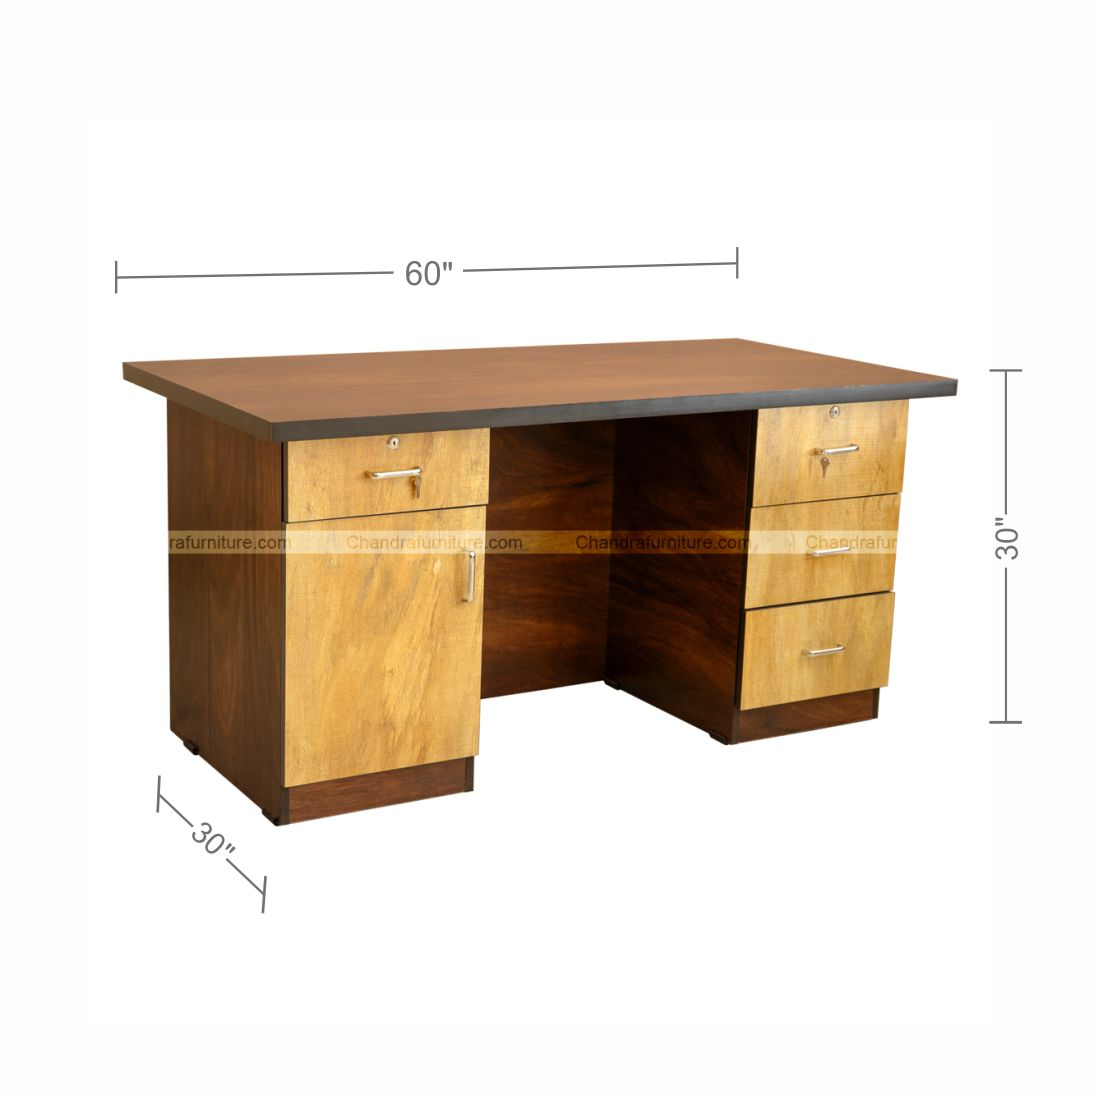 "CHANDRA FURNITURE OFFICE DESK ""CLS-OFD-05"""